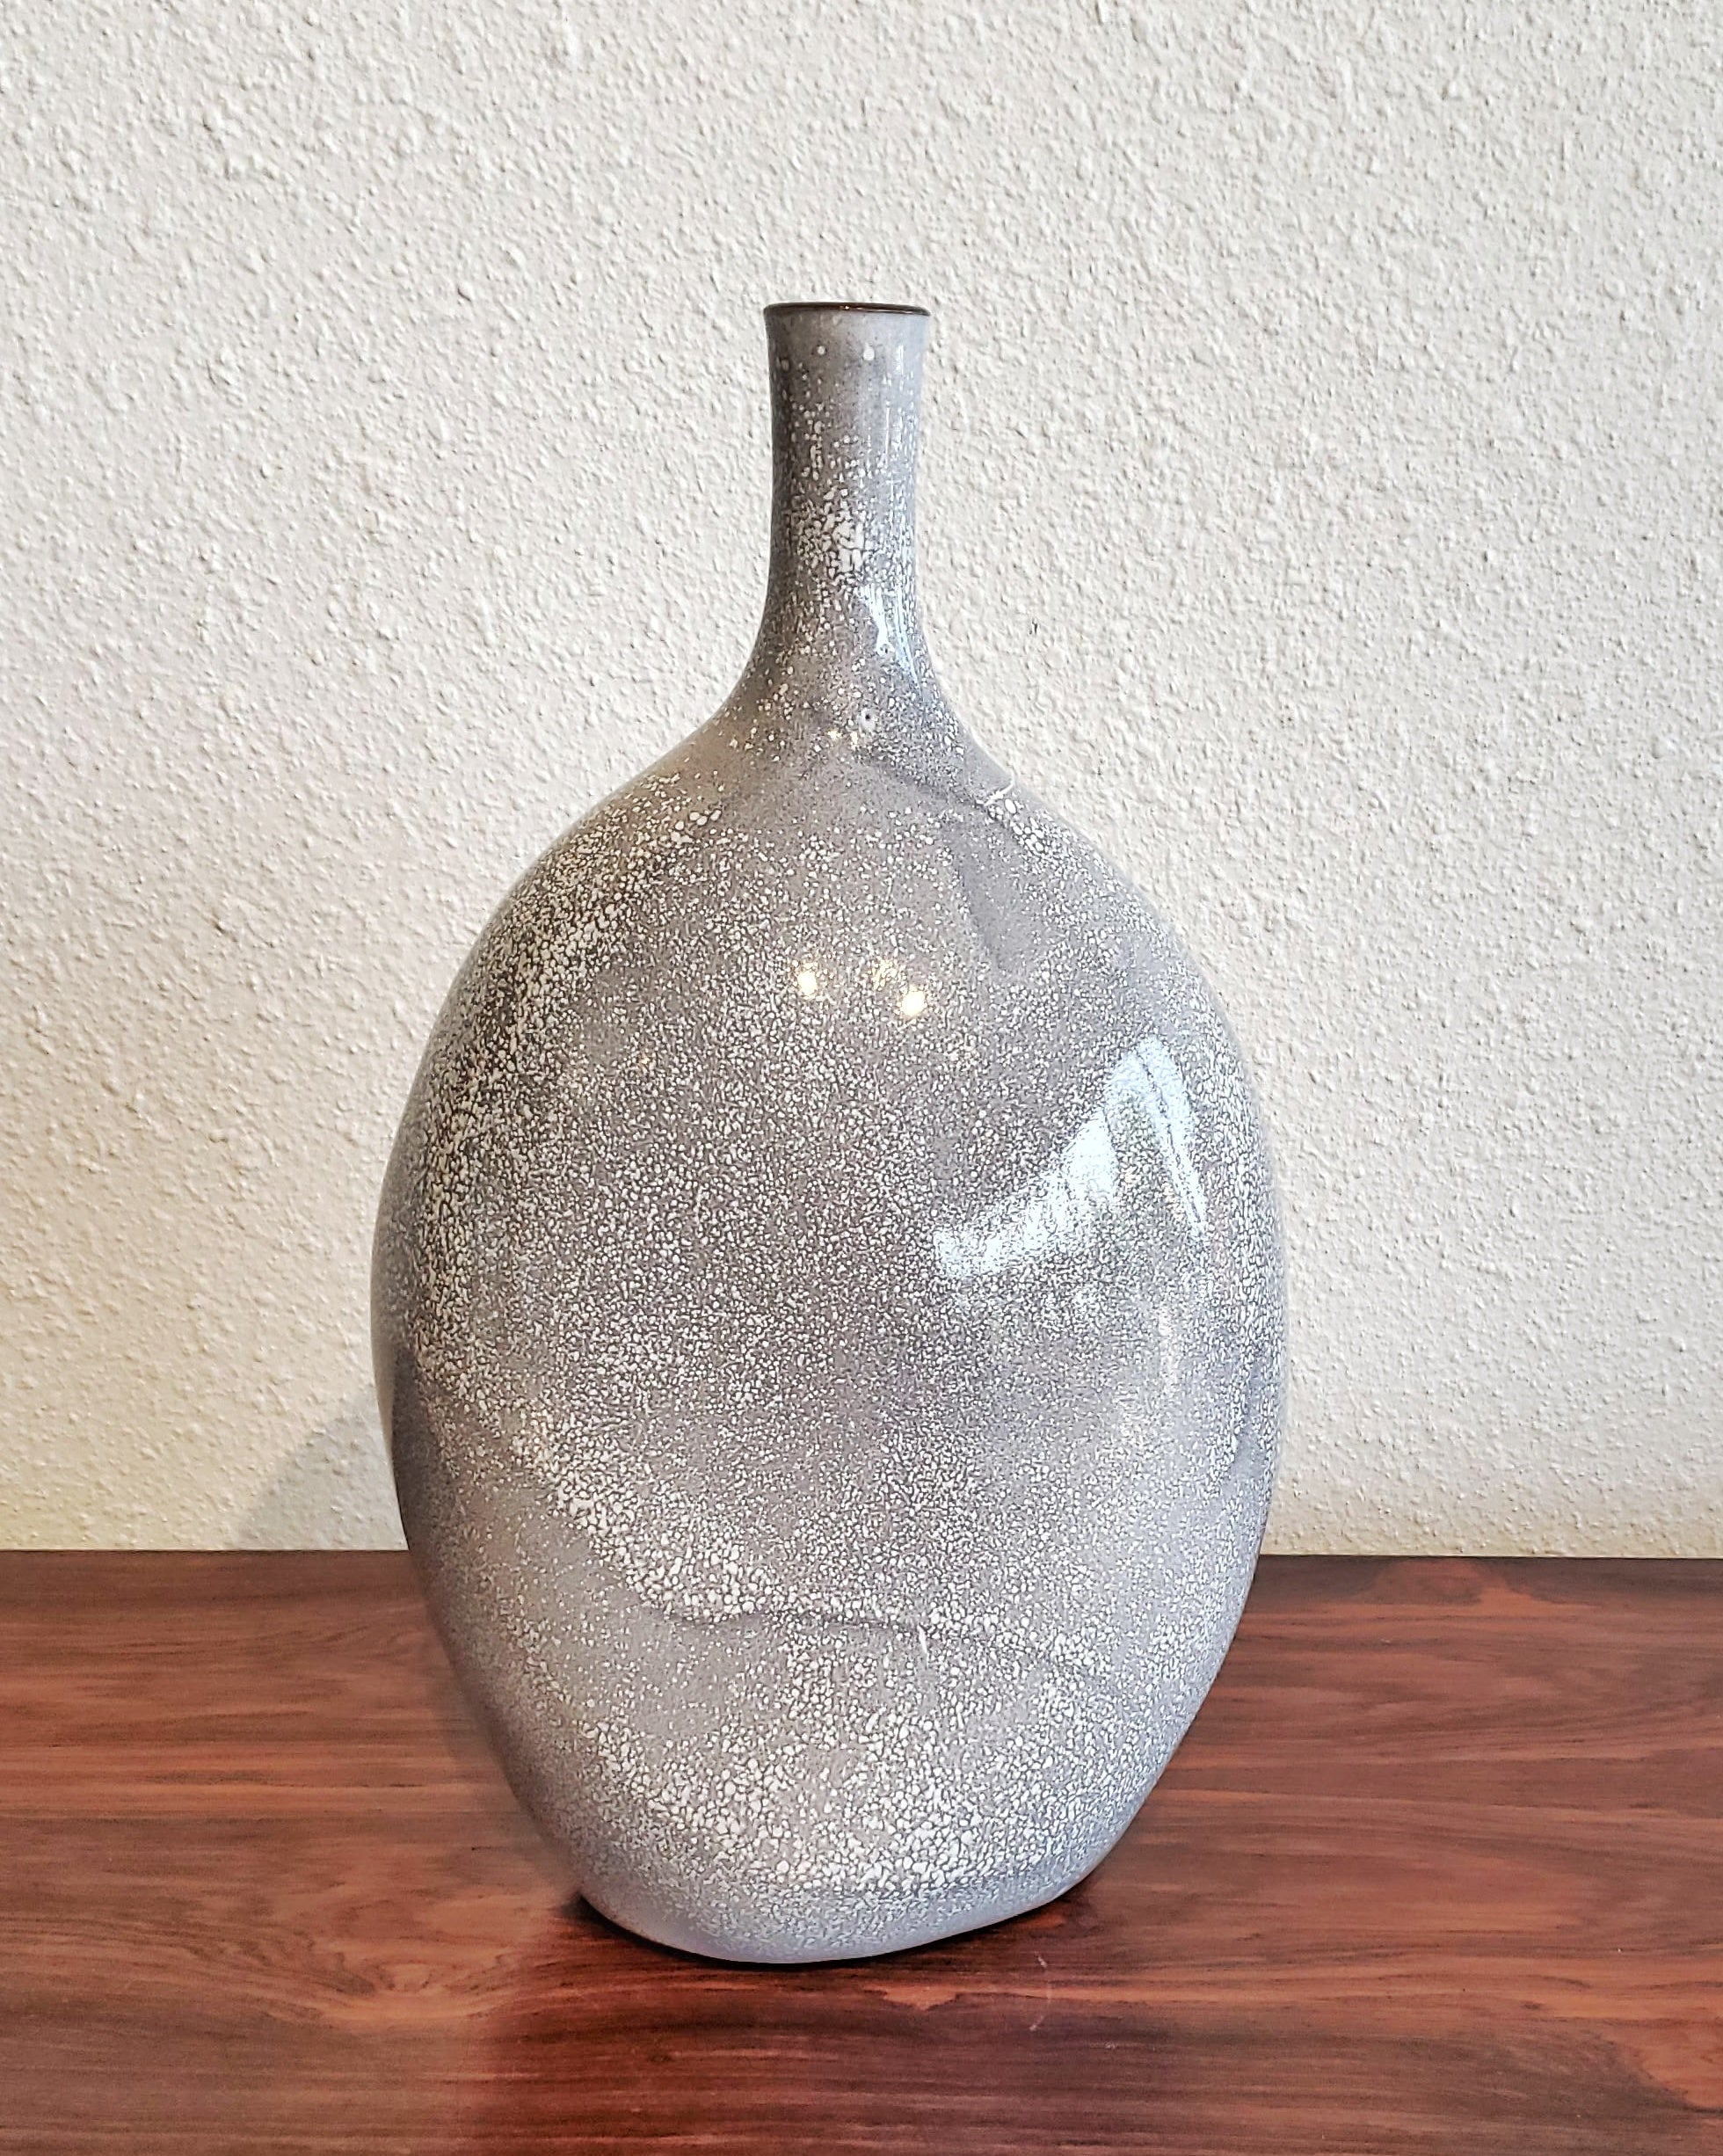 BÜCKING & BÖRNSEN STUDIO POTTERY BOTTLE VASE (31 cm)